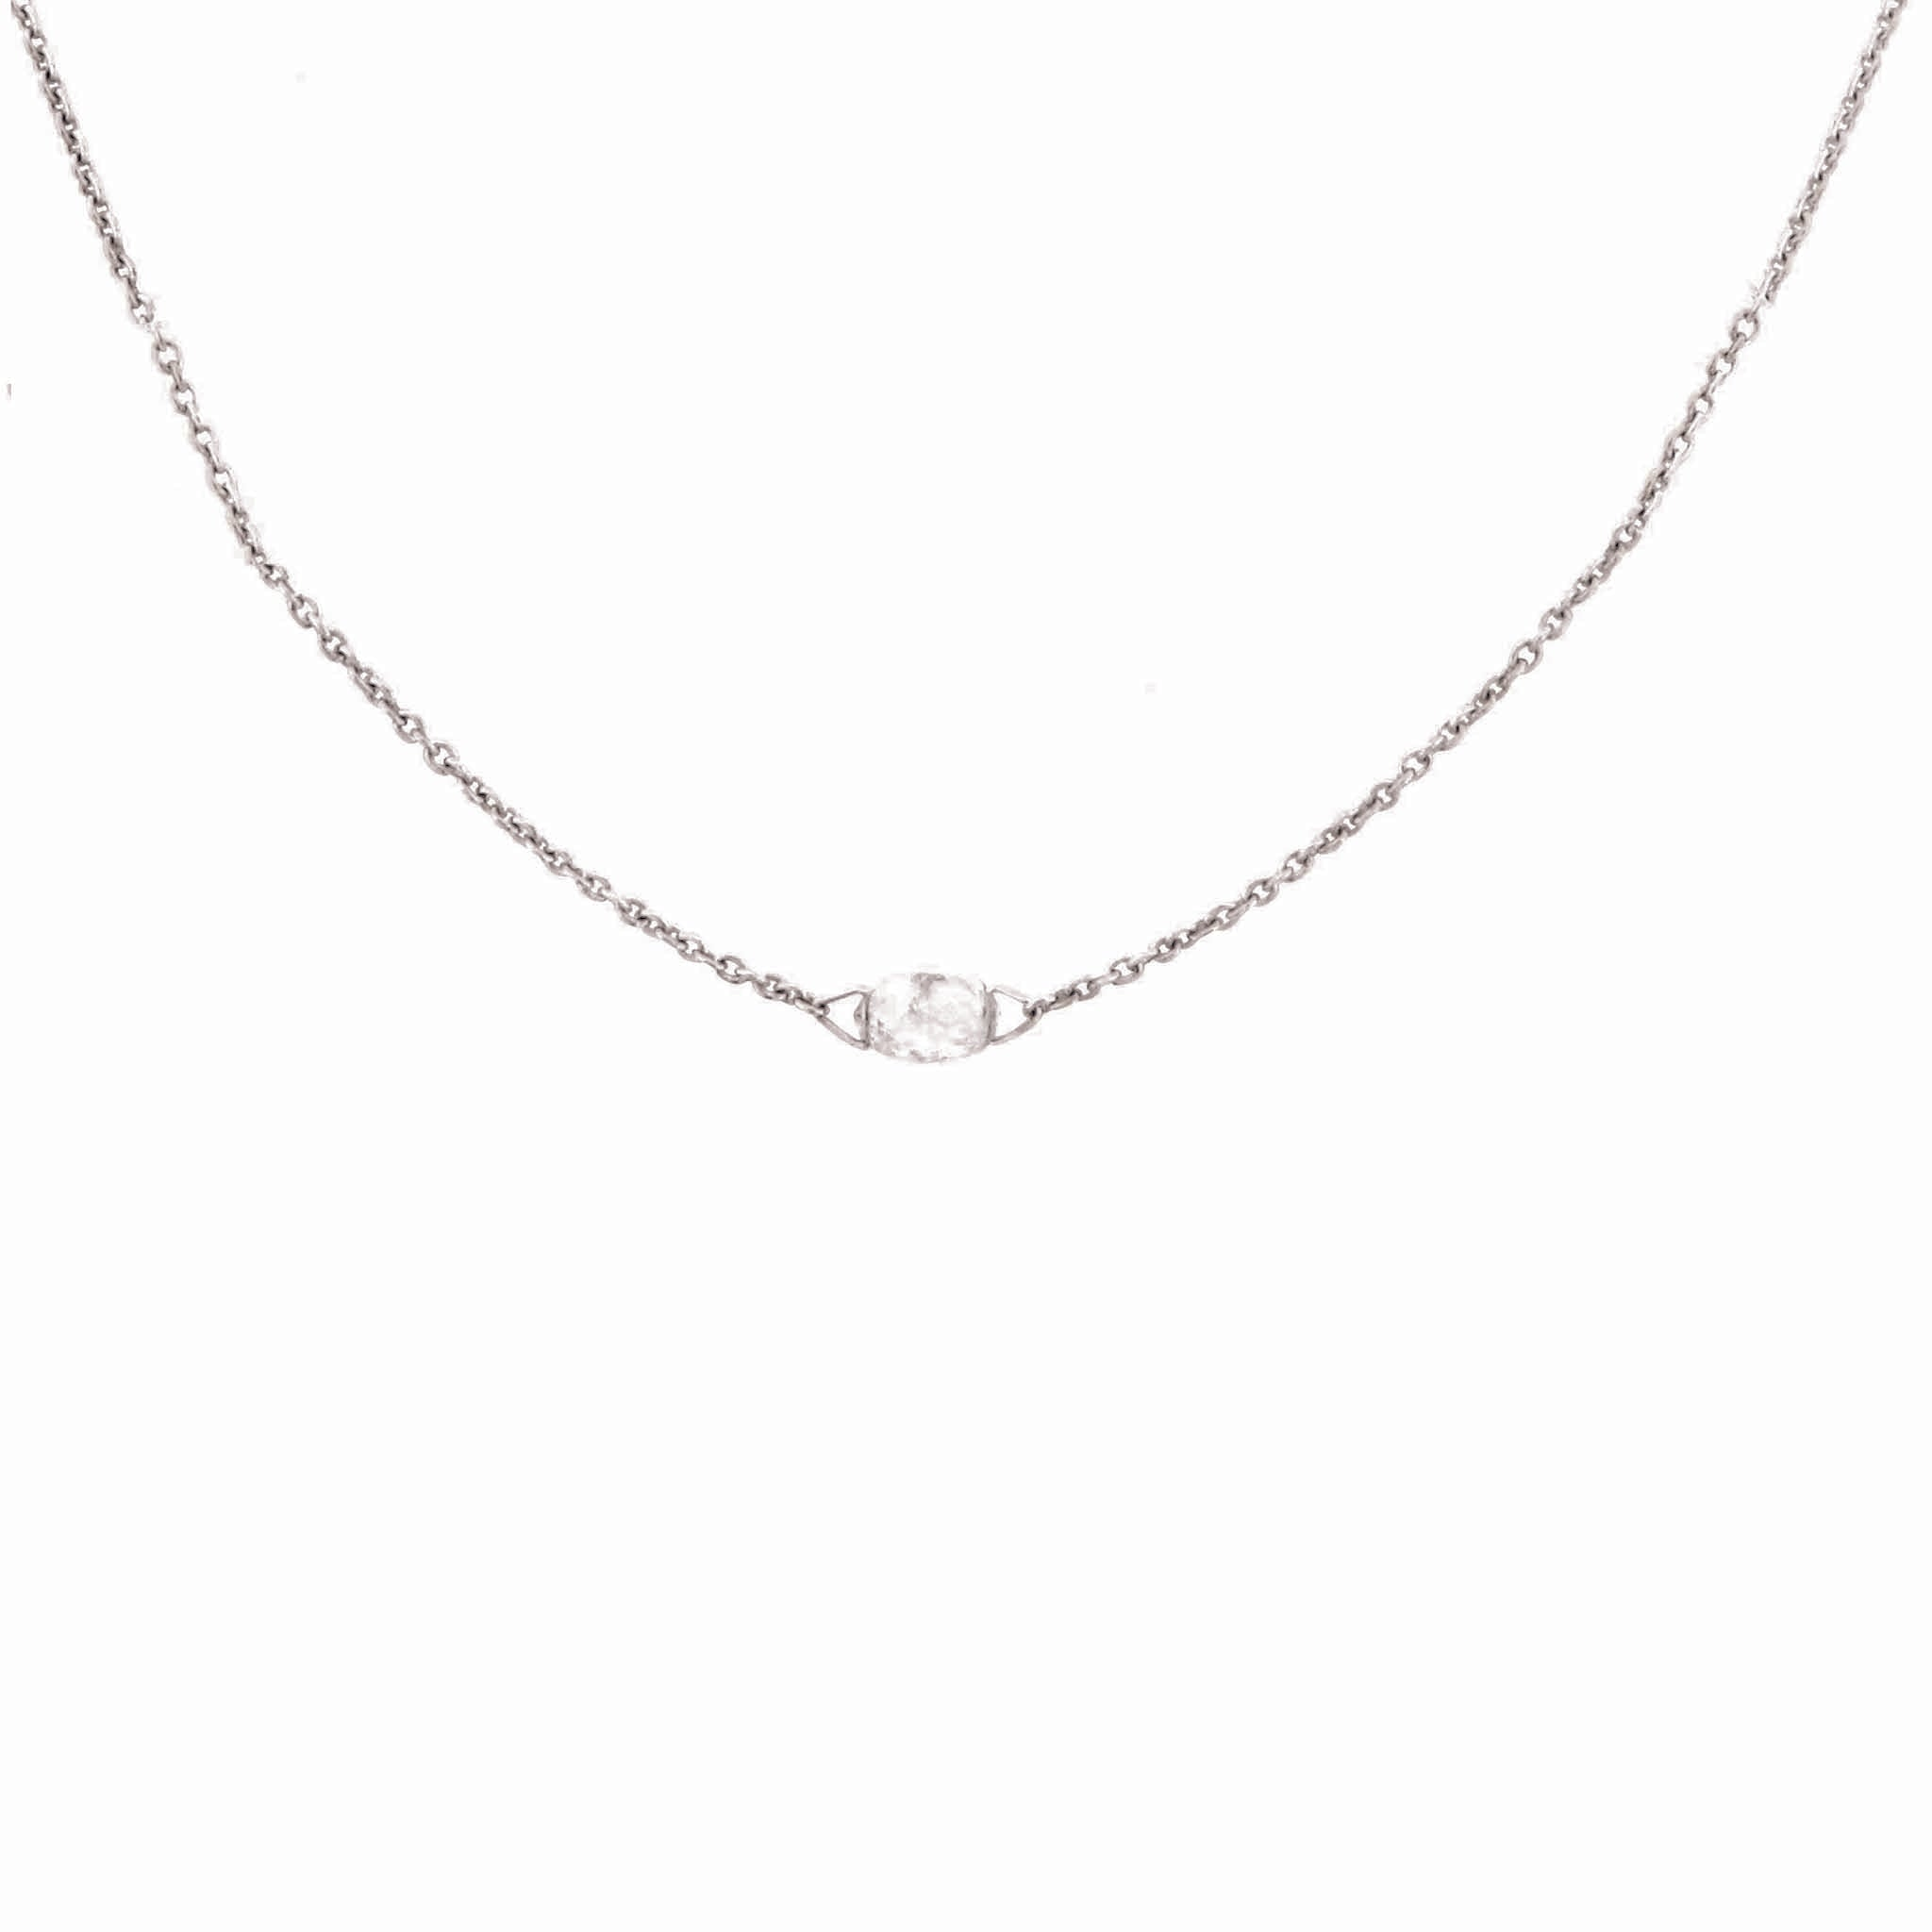 Single Briolette Diamond Necklace